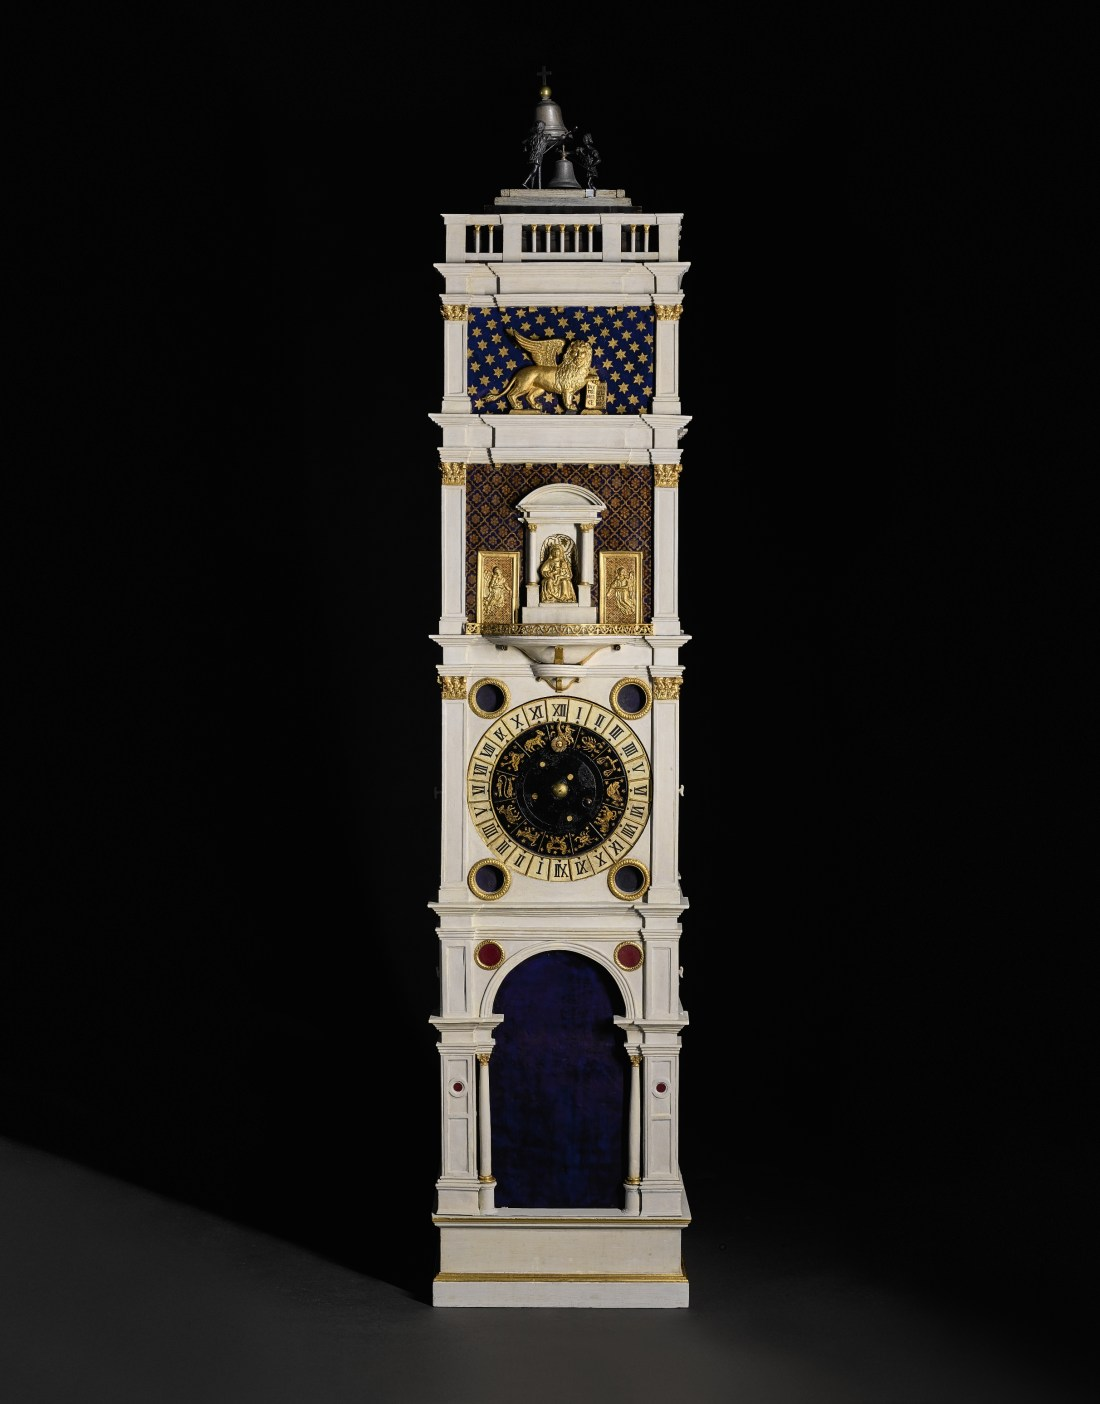 A painted and gilt copper model of the clock tower in Piazza San Marco, Venice. It stands nine feet, eight inches tall. The movement appears to date to the 18th century, and the case to the early 19th century.